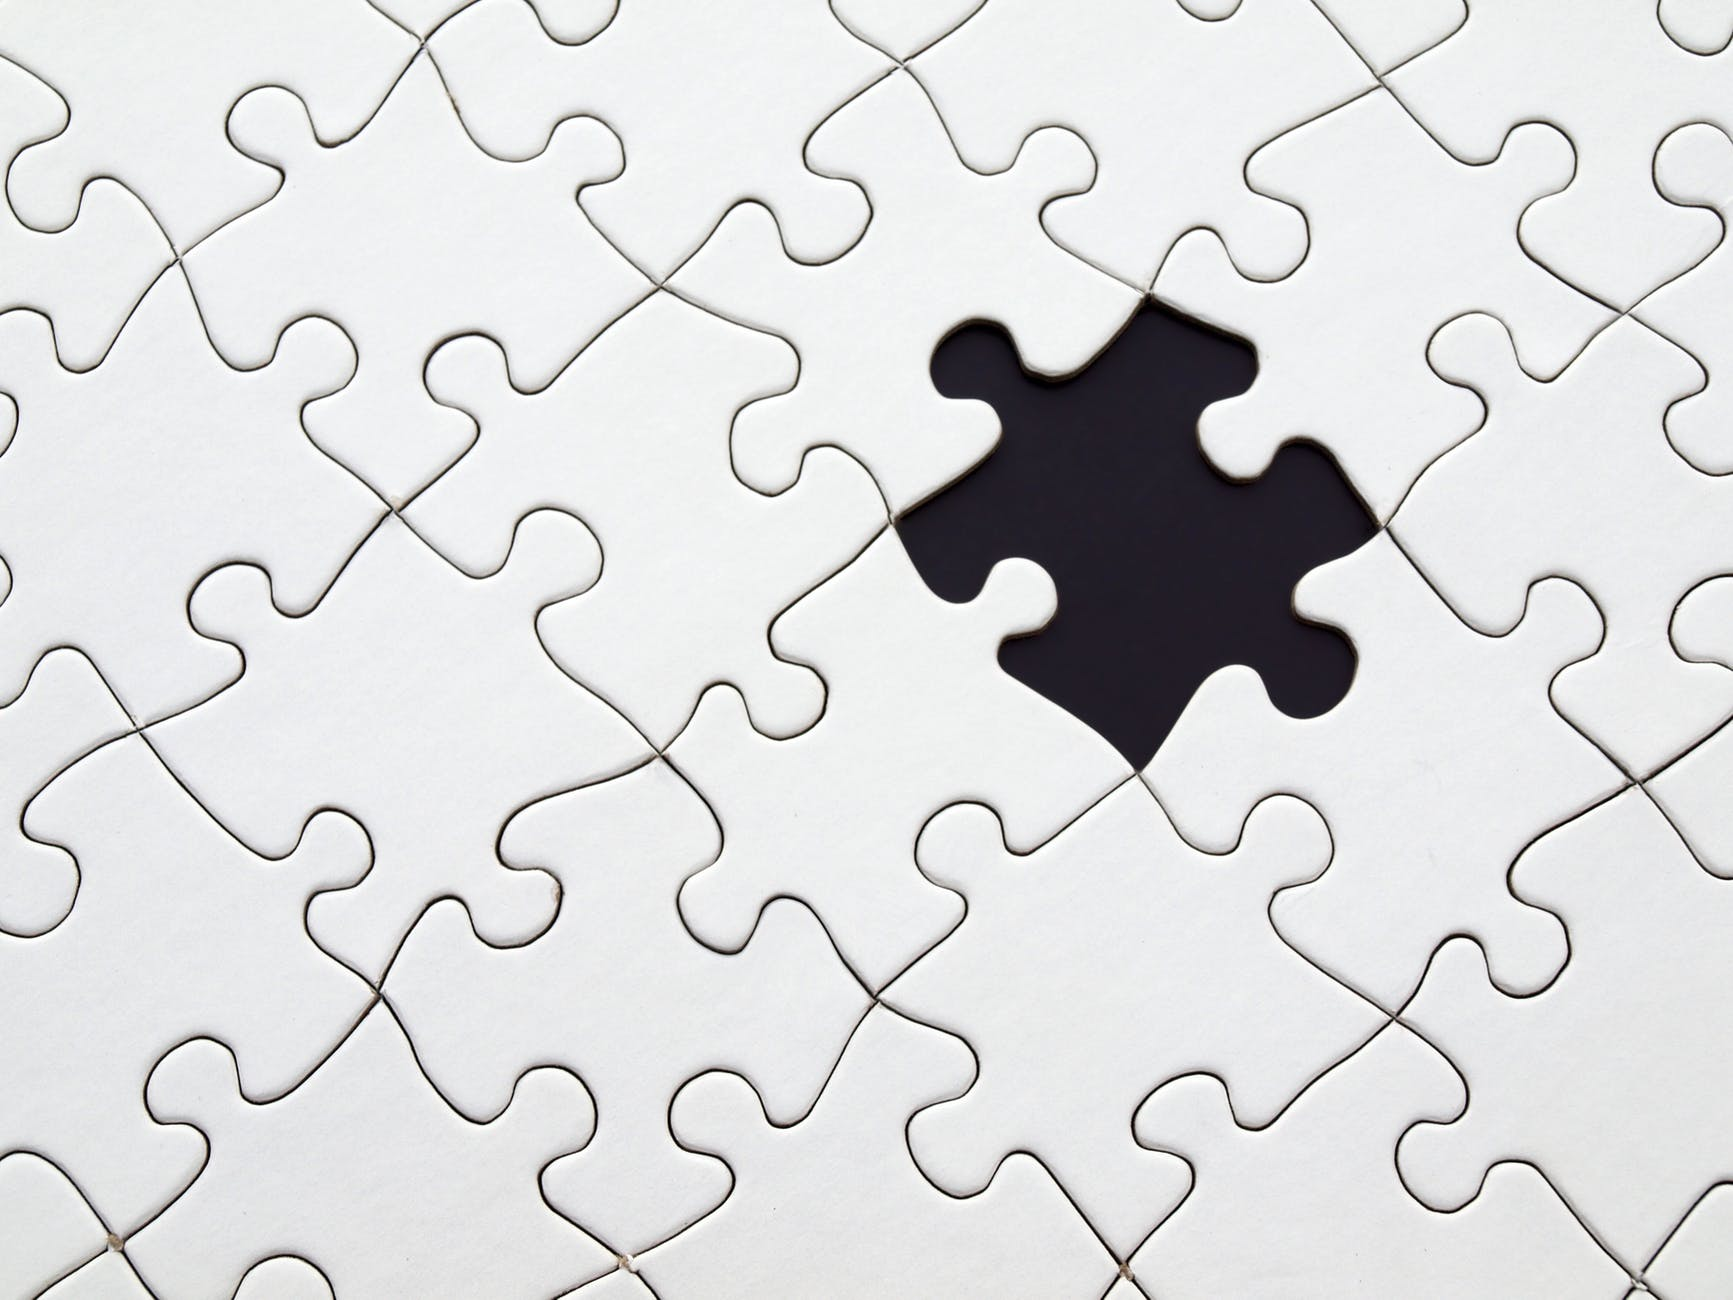 the puzzle pieces are almost together